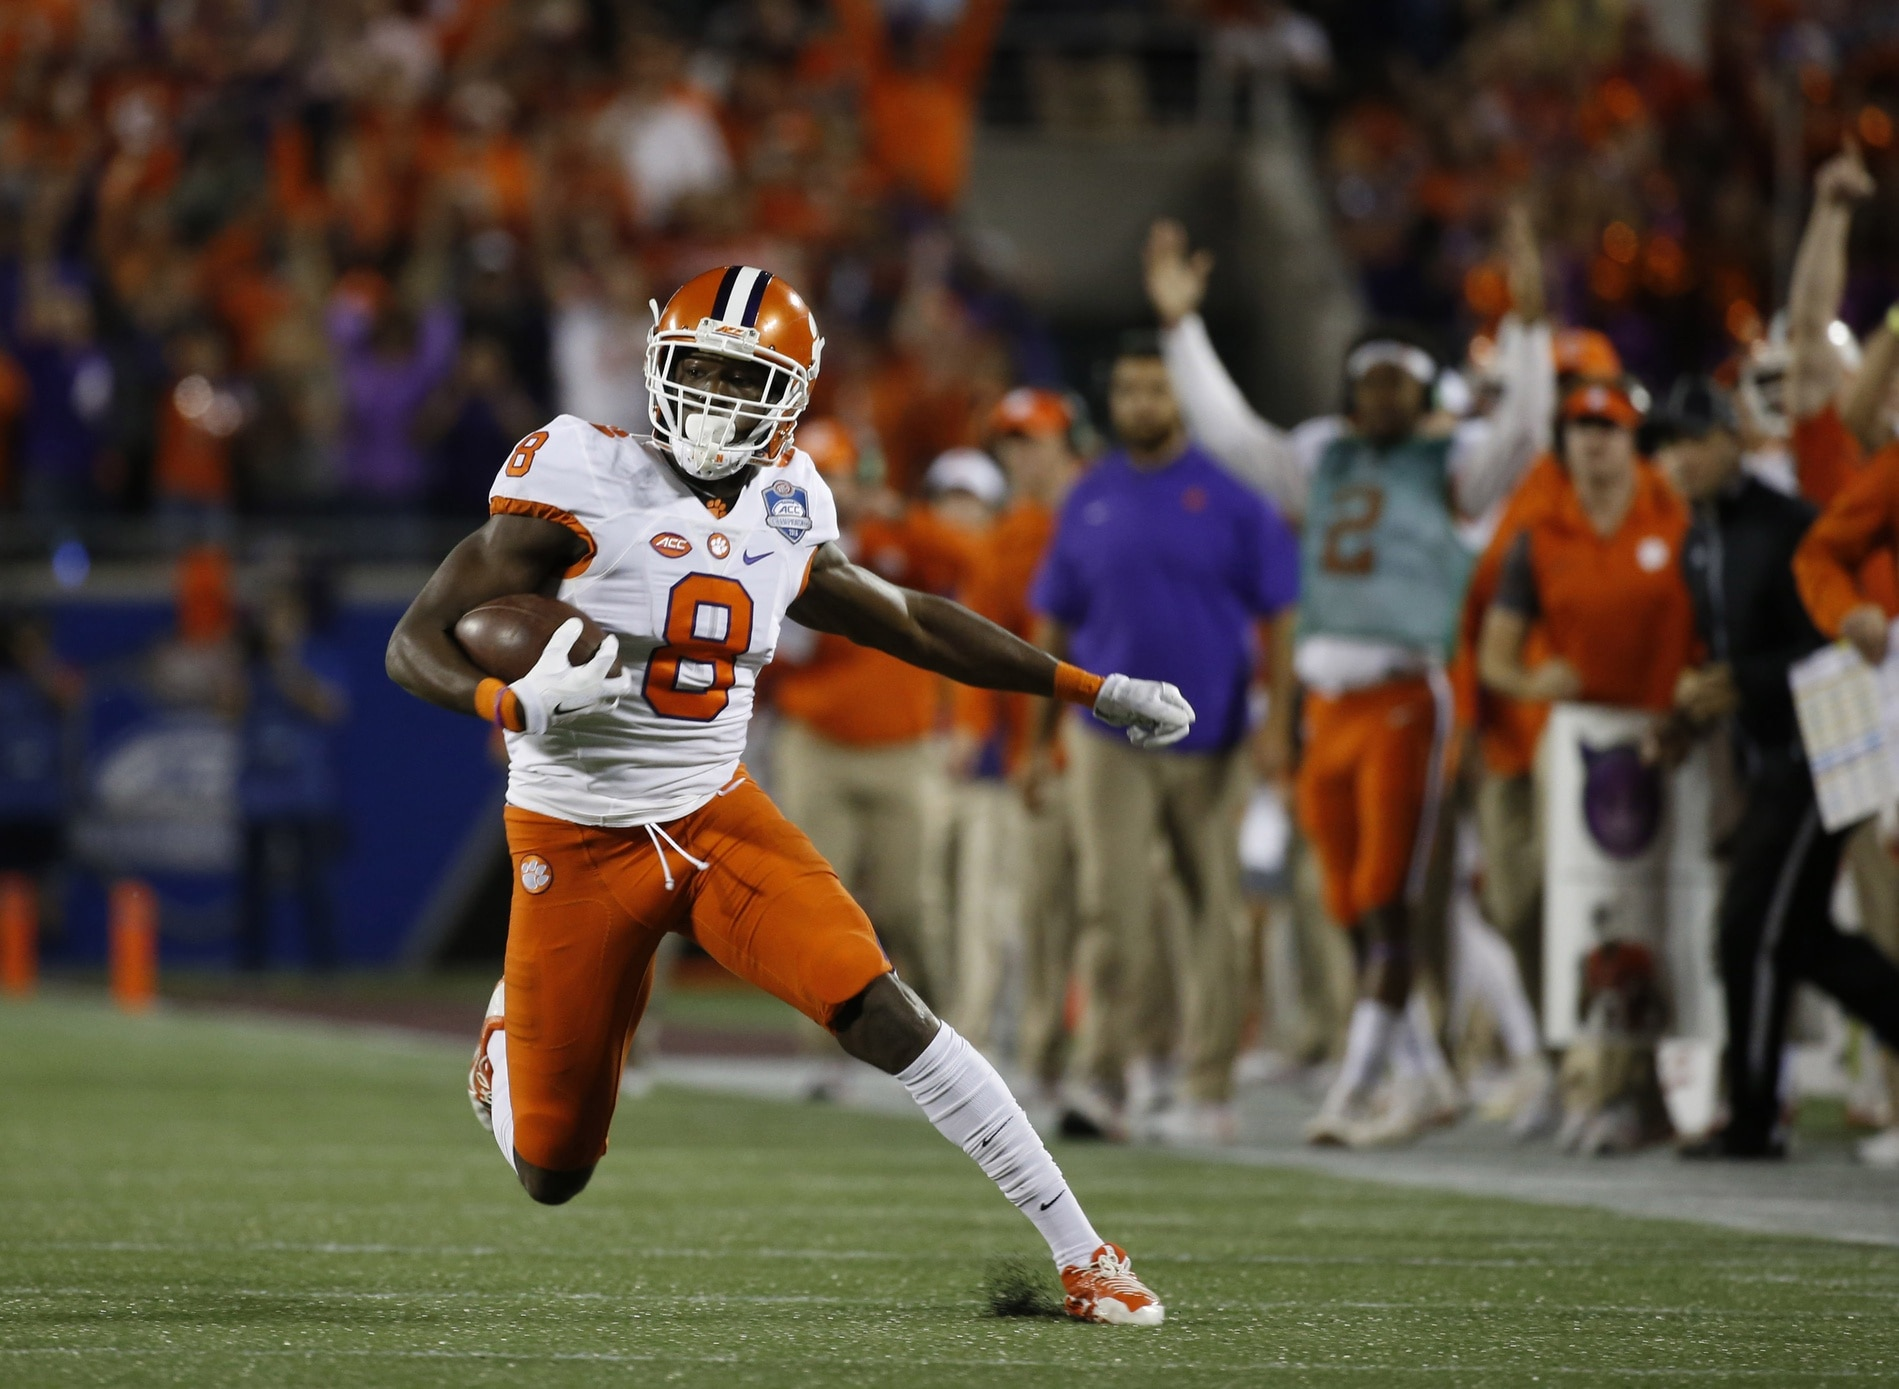 Clemson receiver Deon Cain is one of the best receivers in college football